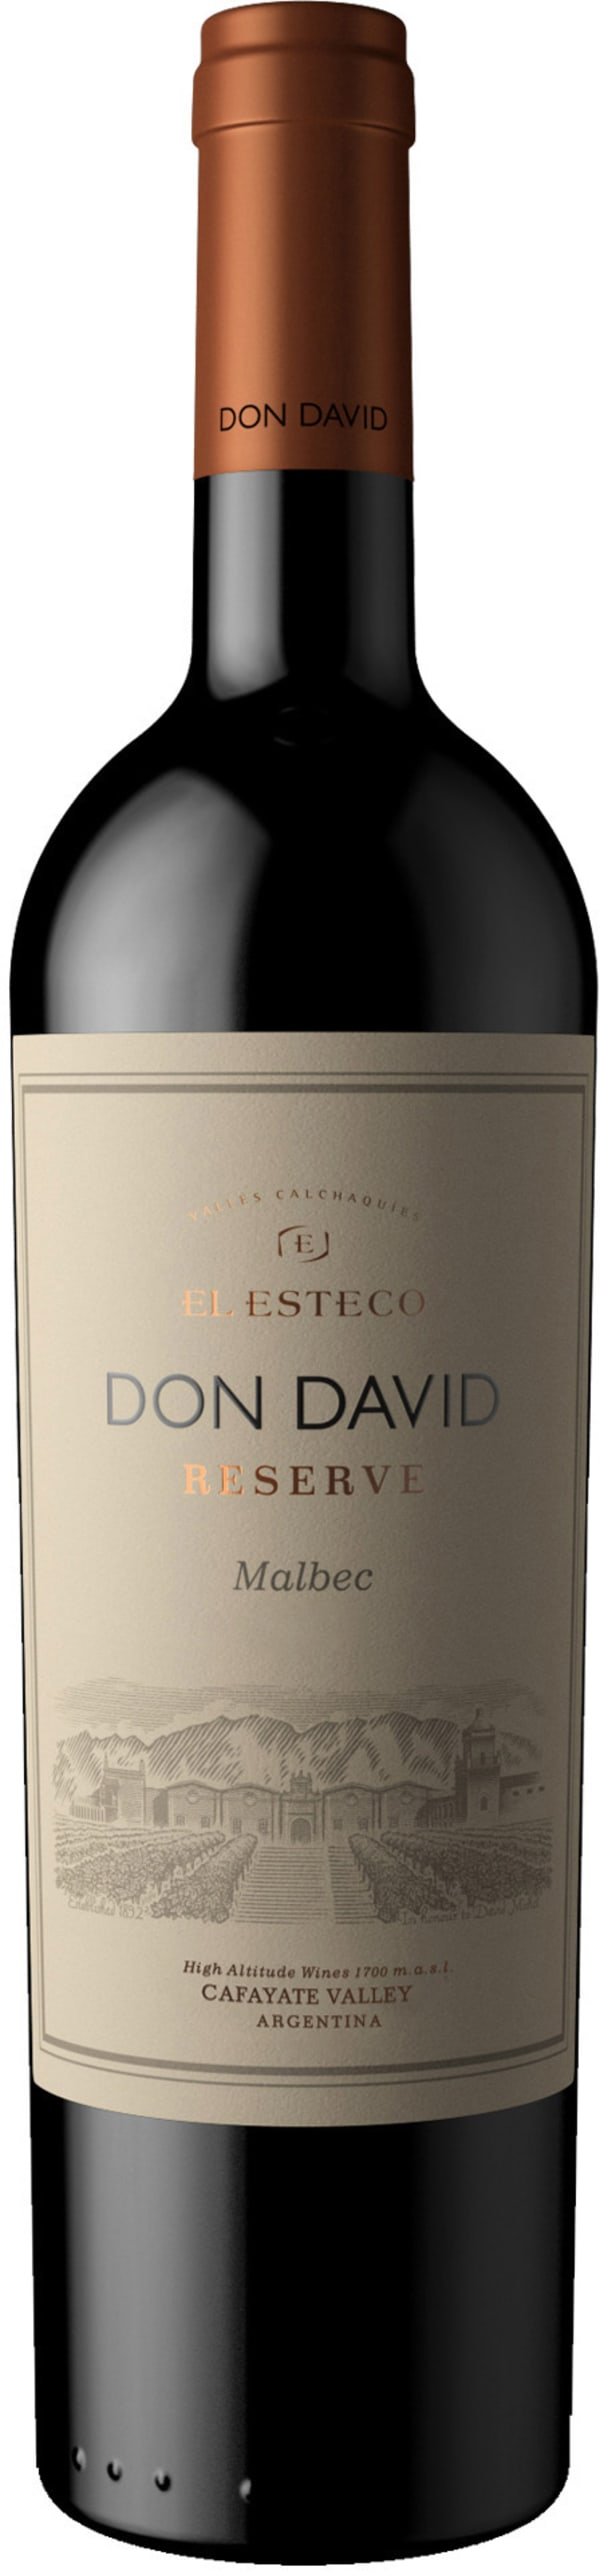 Don David Malbec Reserve 2015